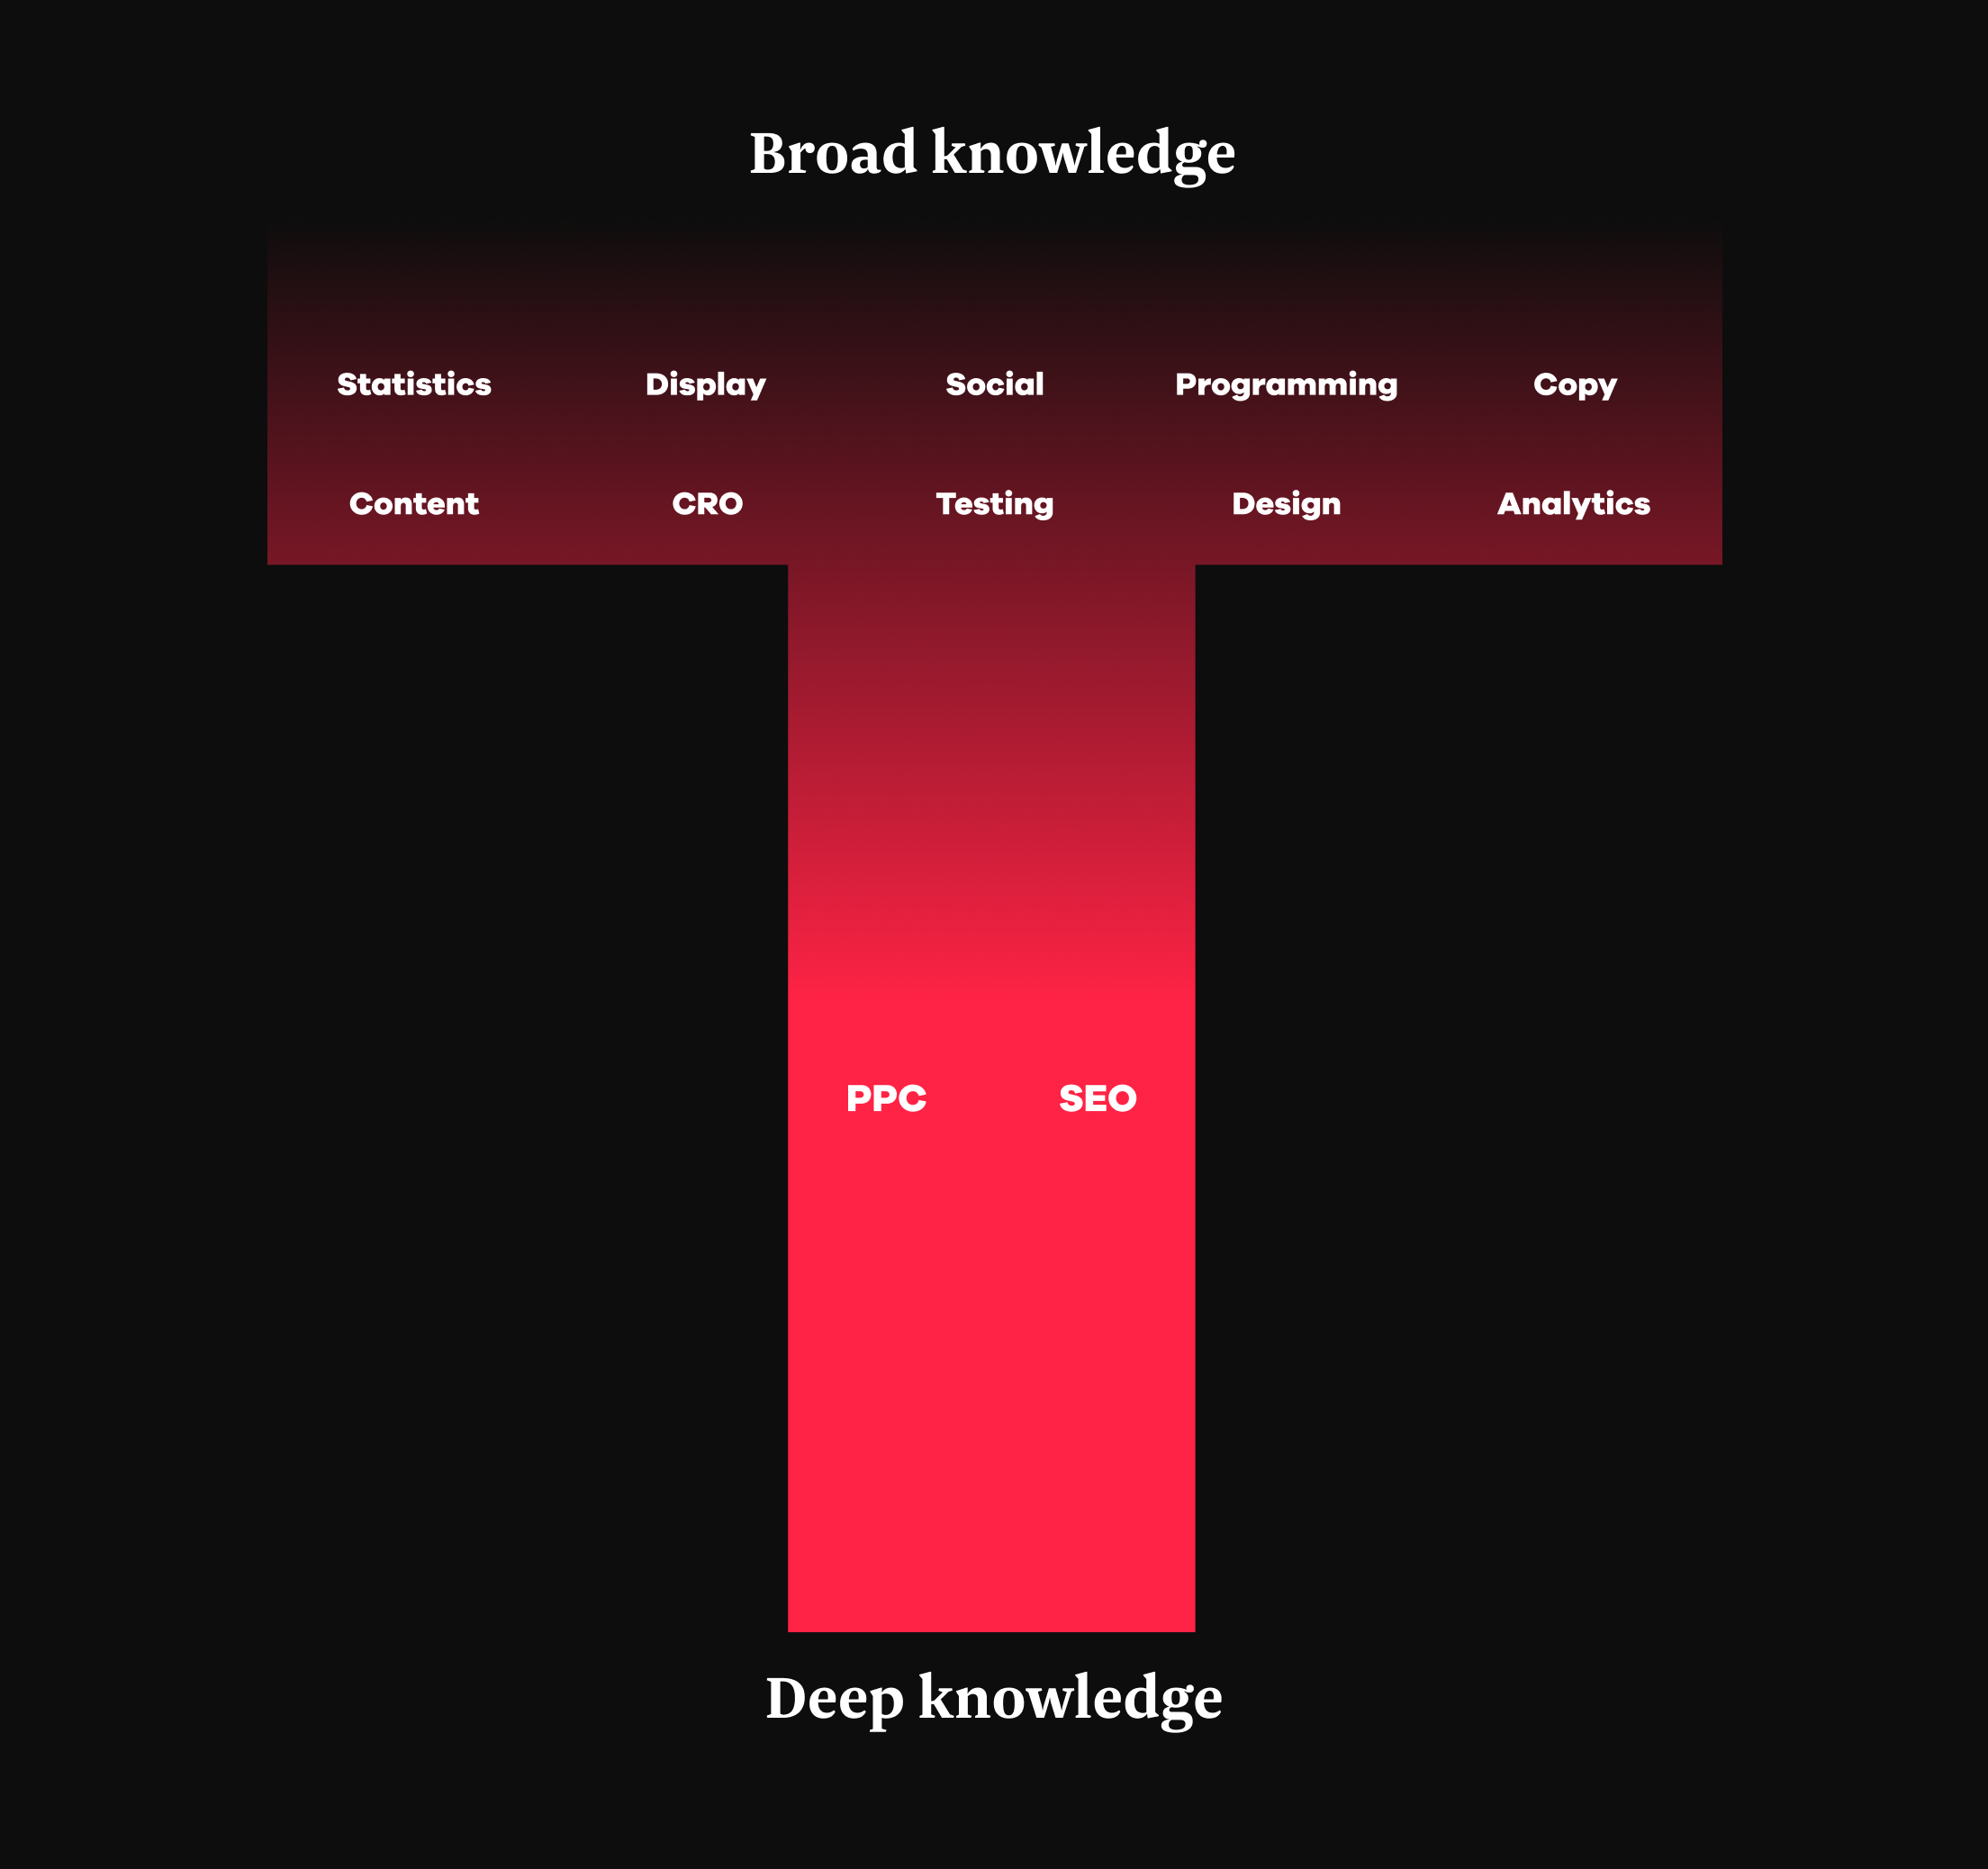 The T-shape knowledge